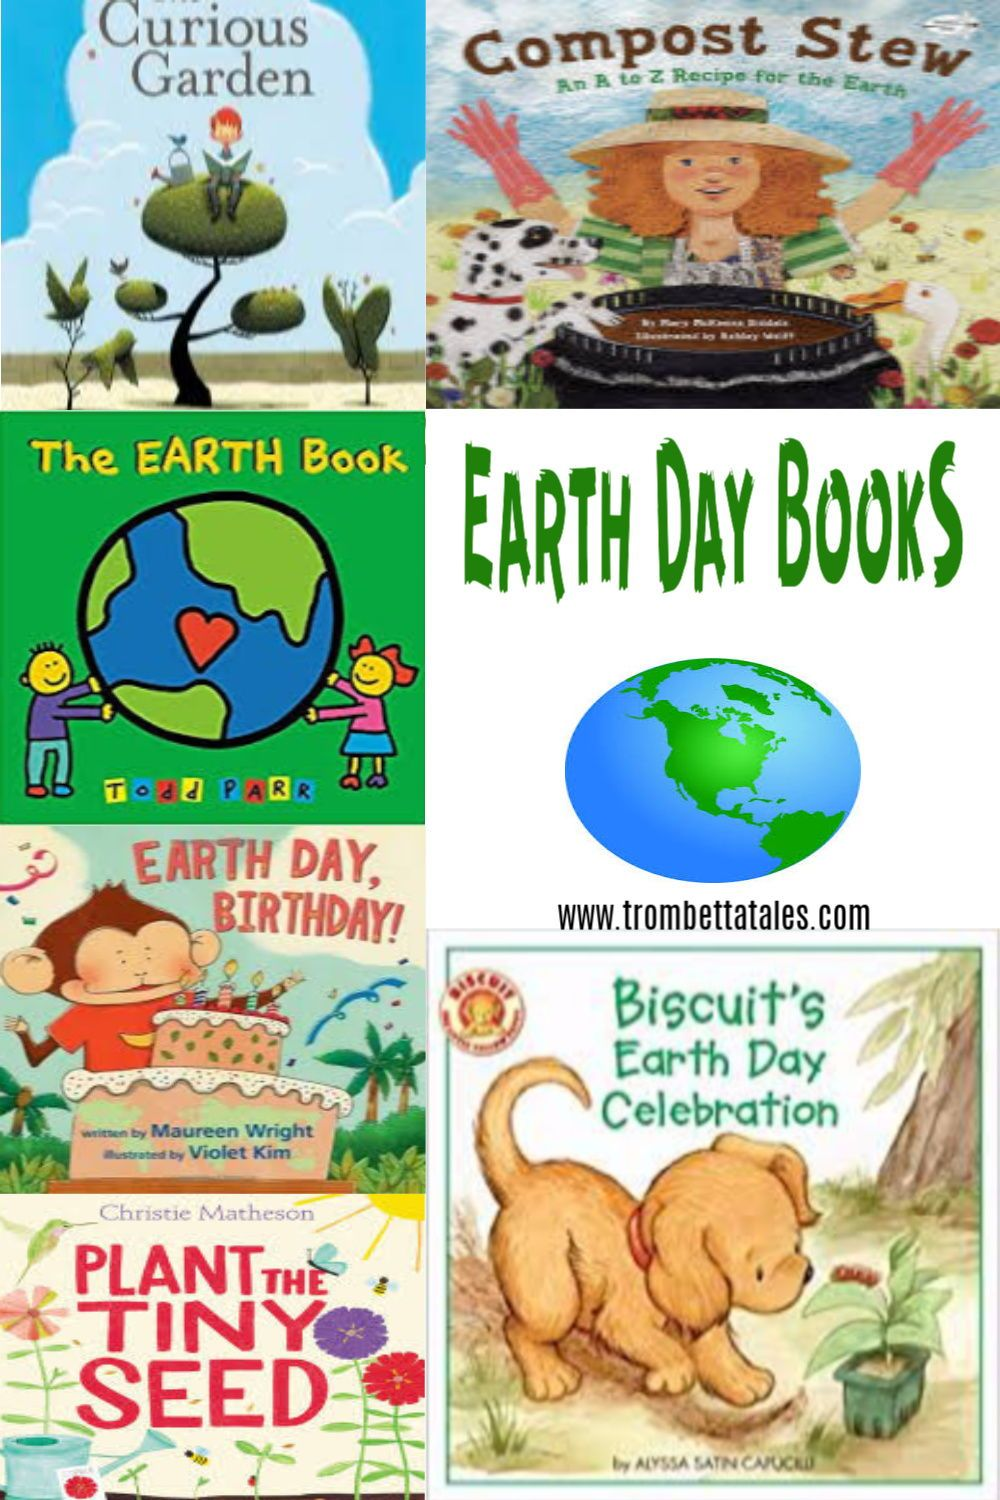 Books That Celebrate Earth Day For Children And Parents Earthday Storytime Kidlit Picturebooks Day Book Earth Book Earth Day Earth day read alouds